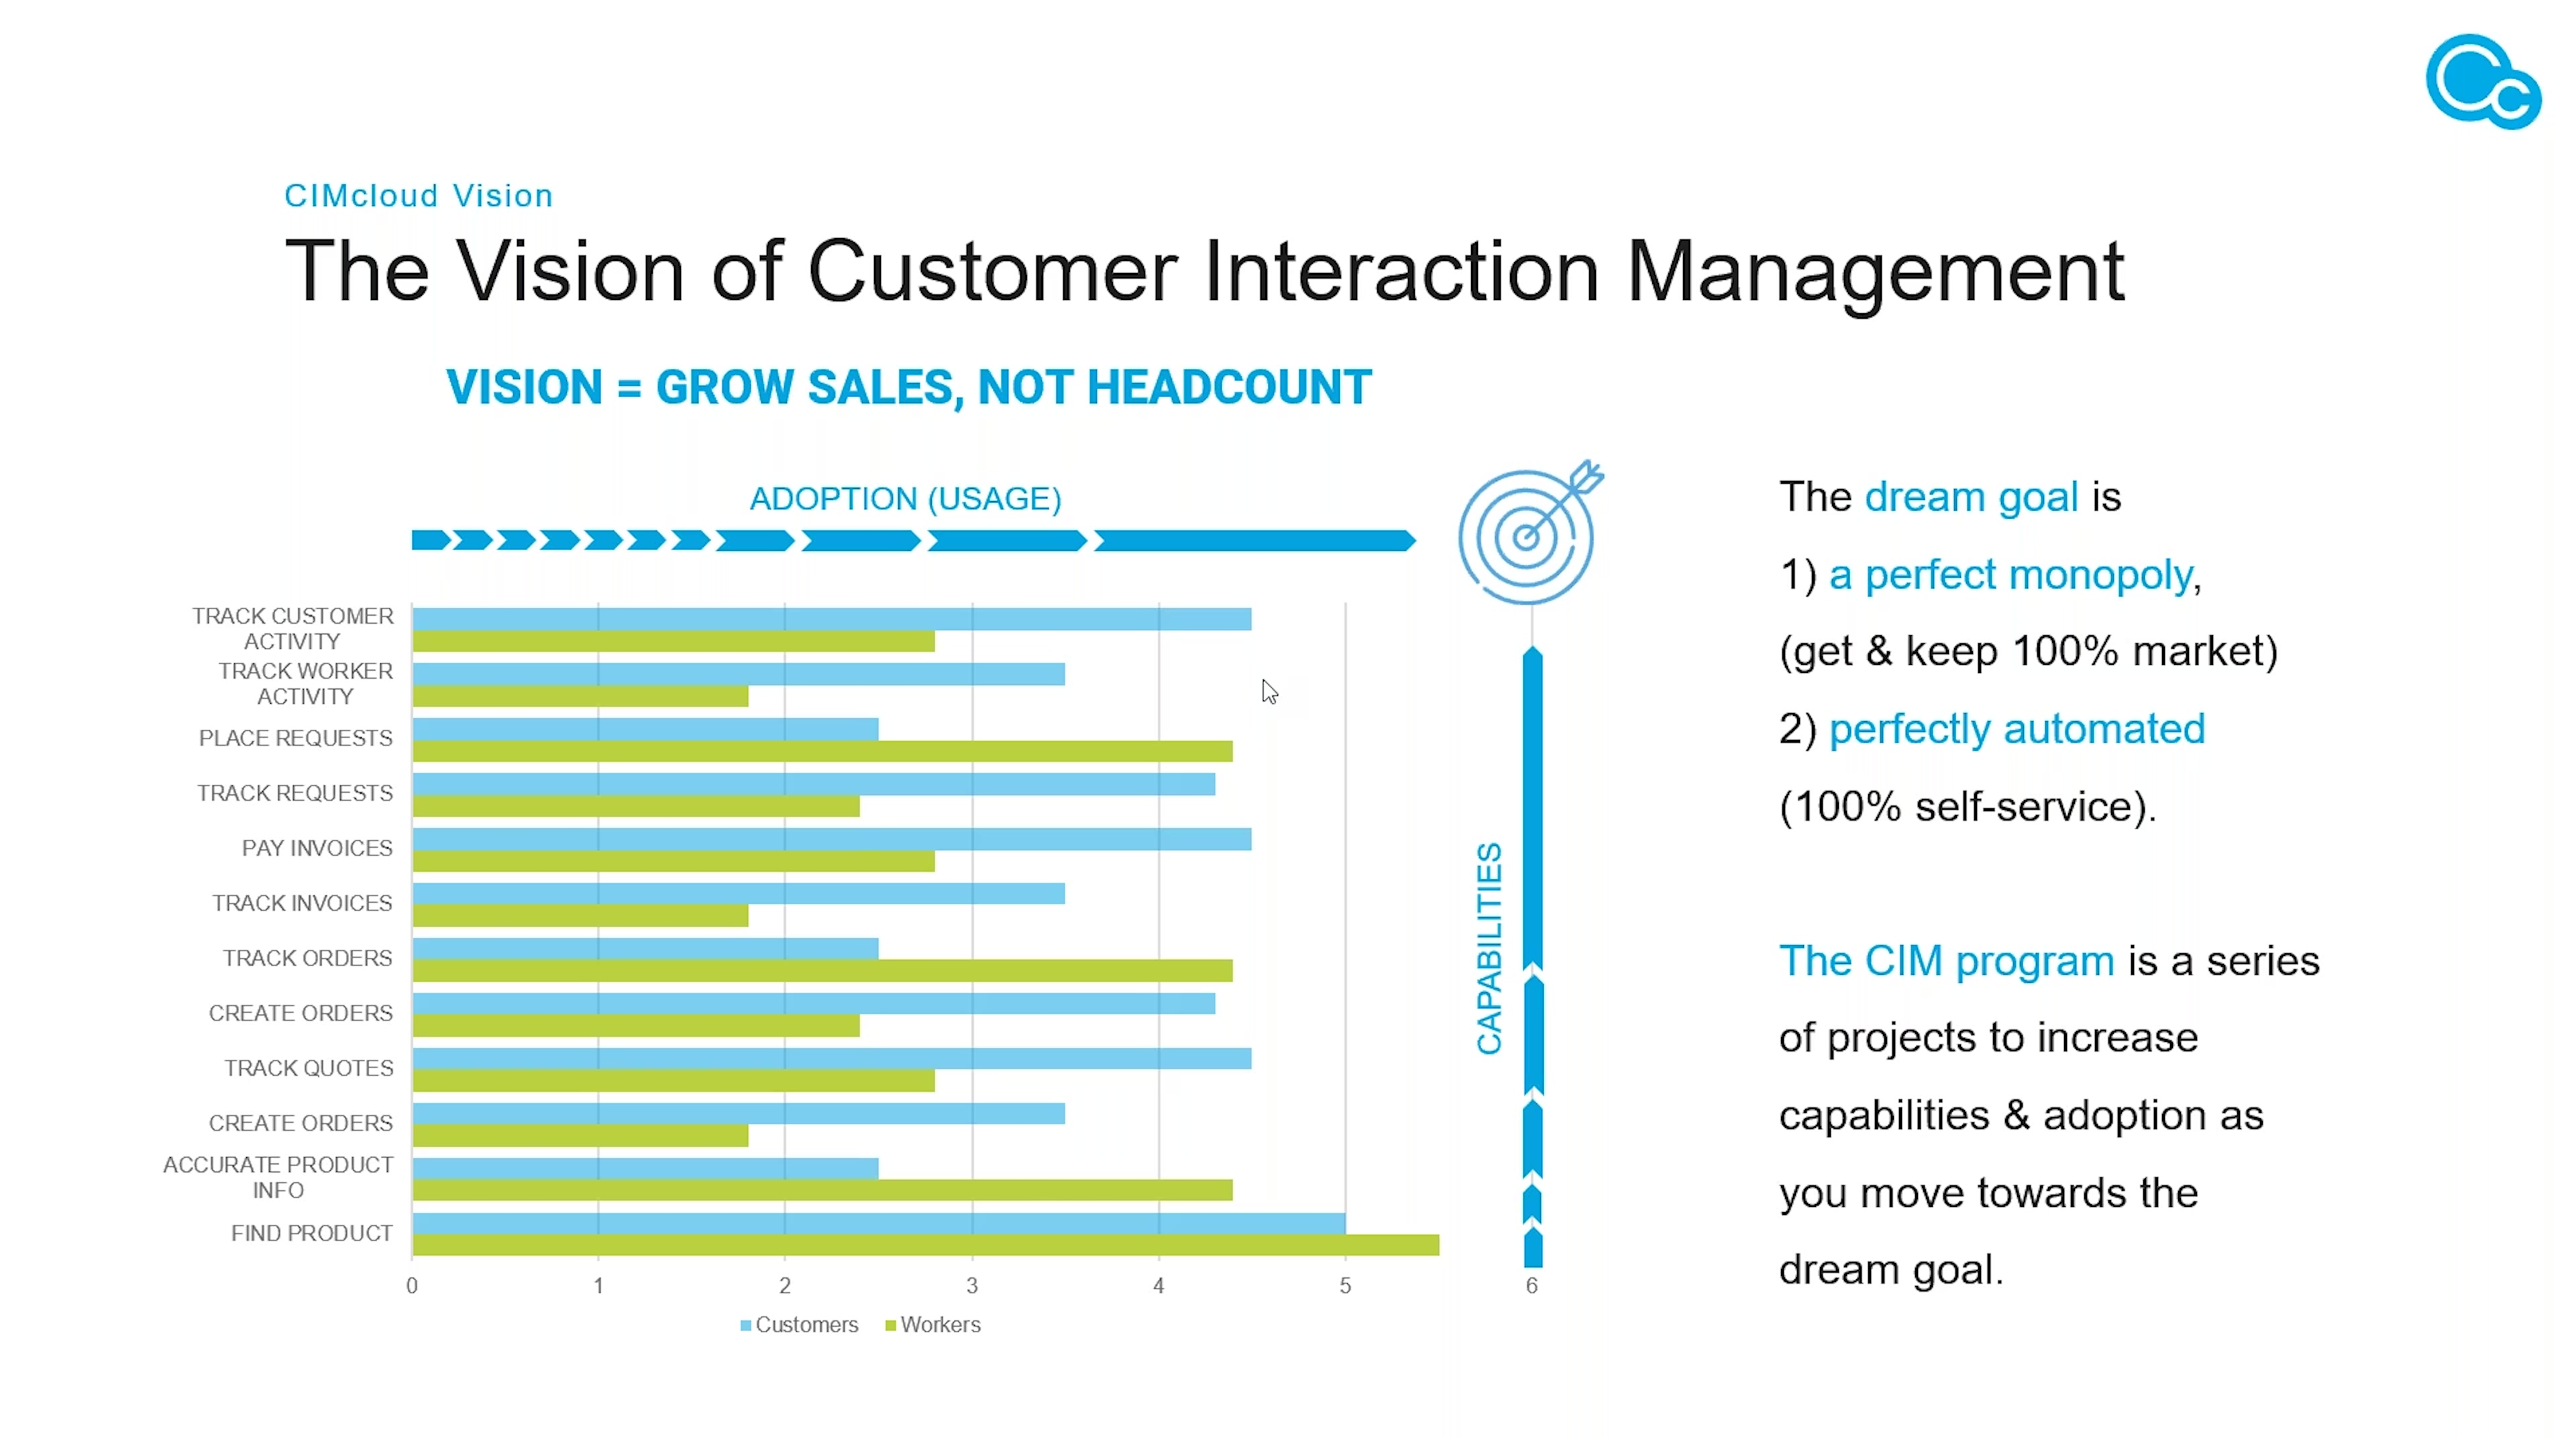 CIMcloud State of the Company Image